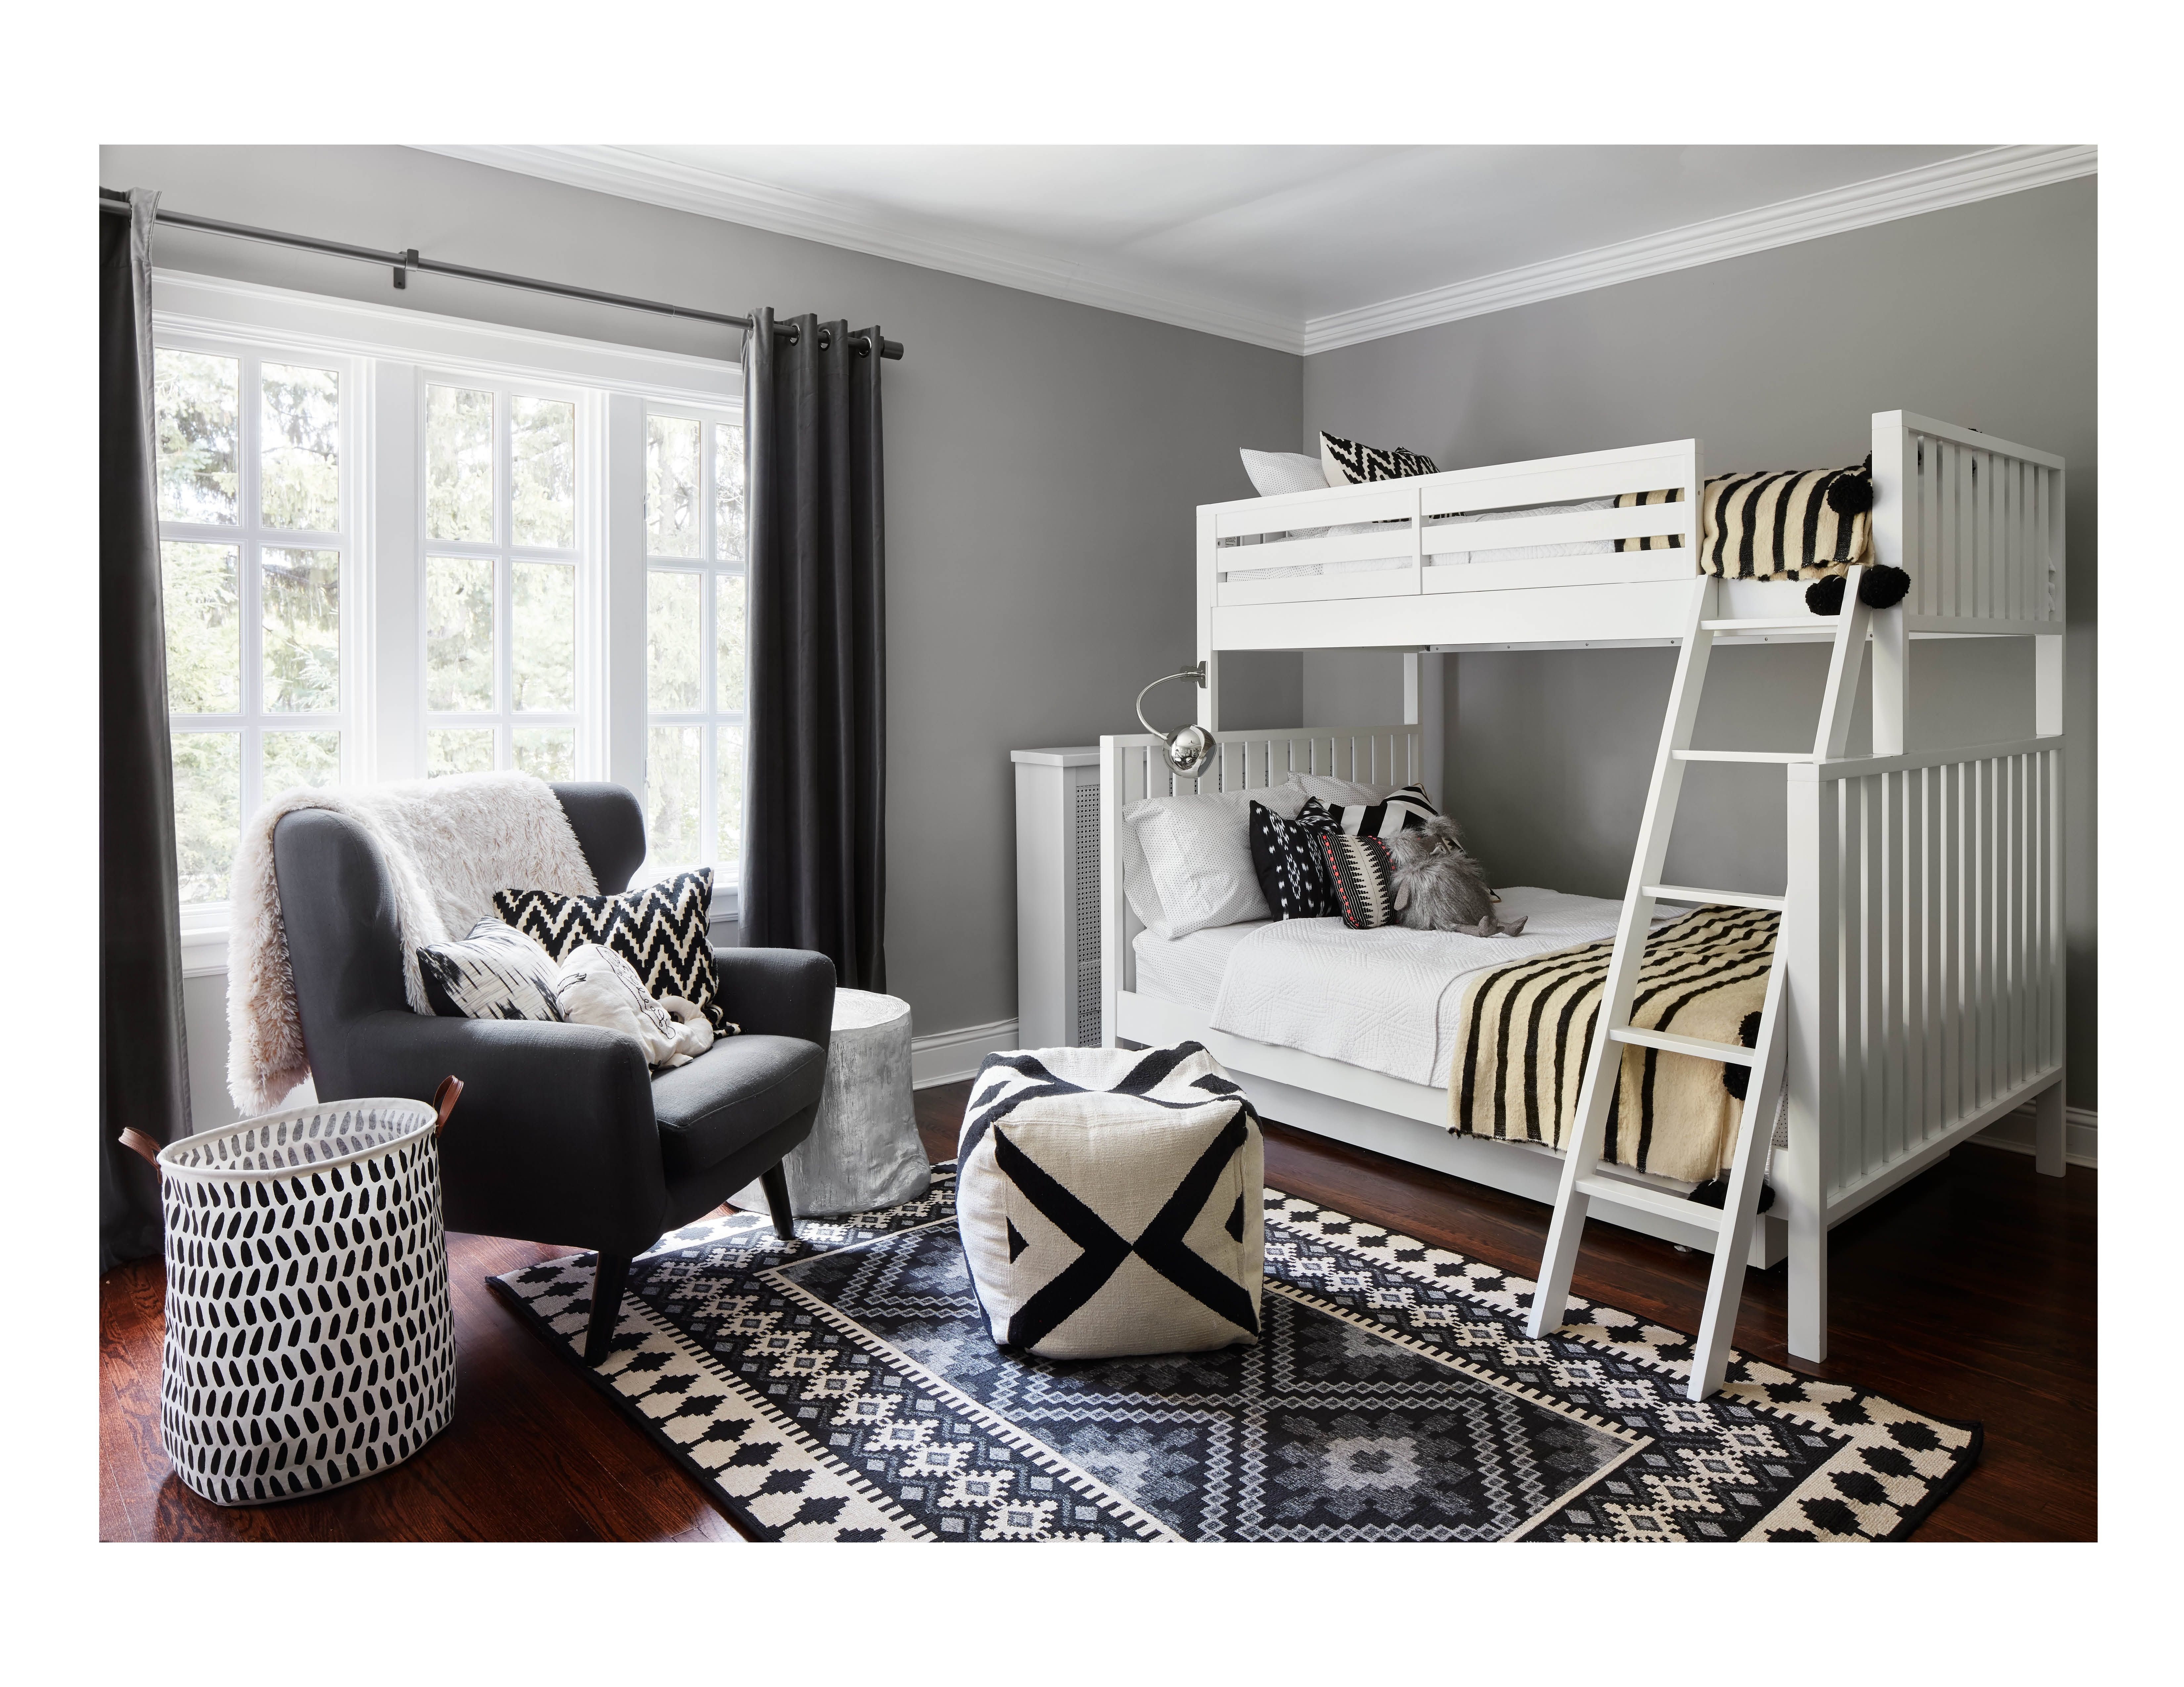 36 Black White Bedrooms Photos And Ideas For Bedrooms With Black